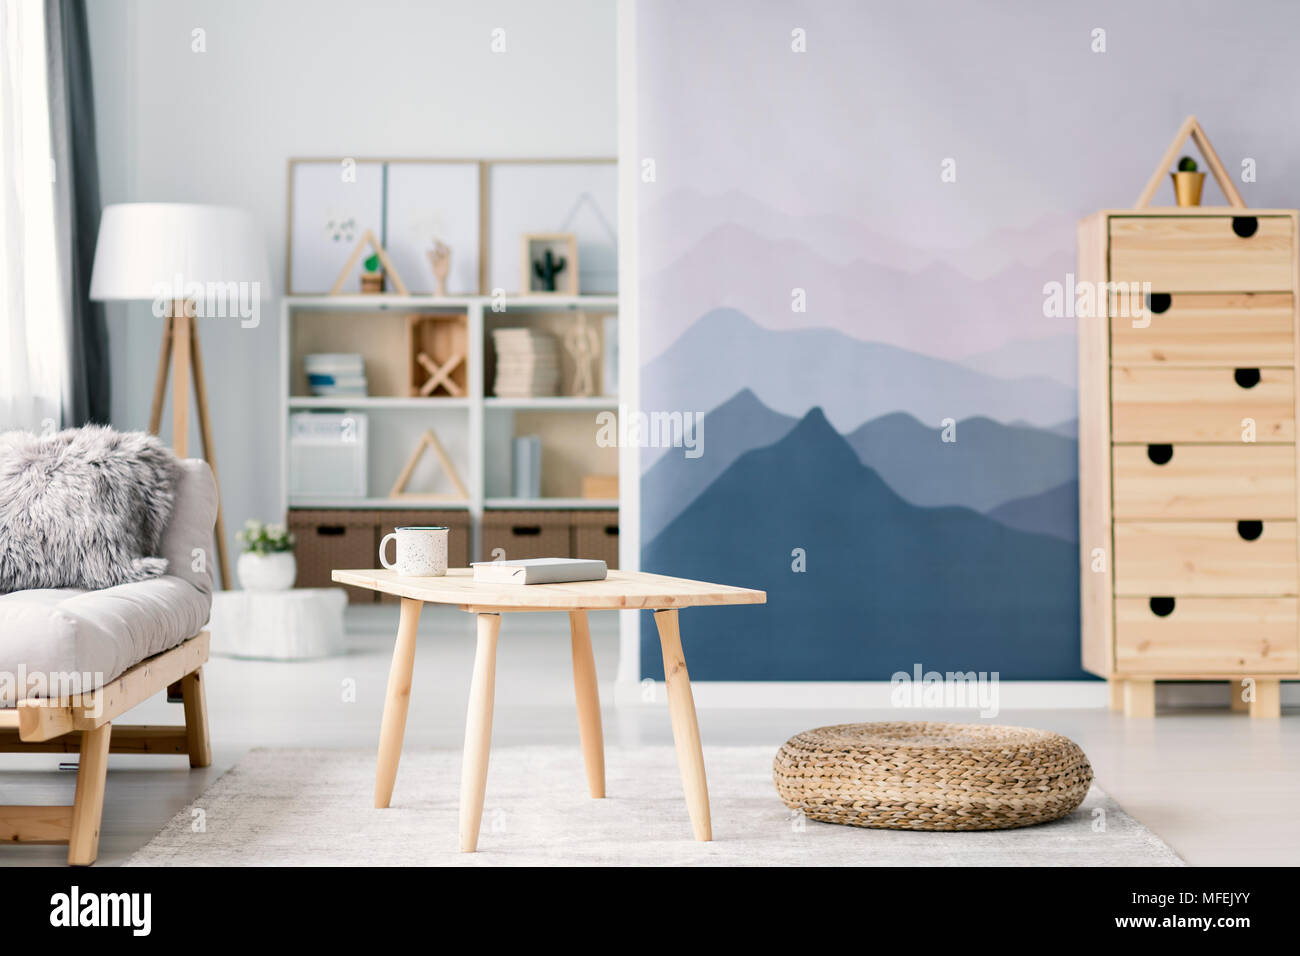 Popular Wallpaper Mountain Room - blurred-photo-of-a-scandi-living-room-interior-with-mountain-wallpaper-and-beige-sofa-focus-on-a-wooden-table-and-pouf-in-the-middle-MFEJYY  2018_25597.jpg